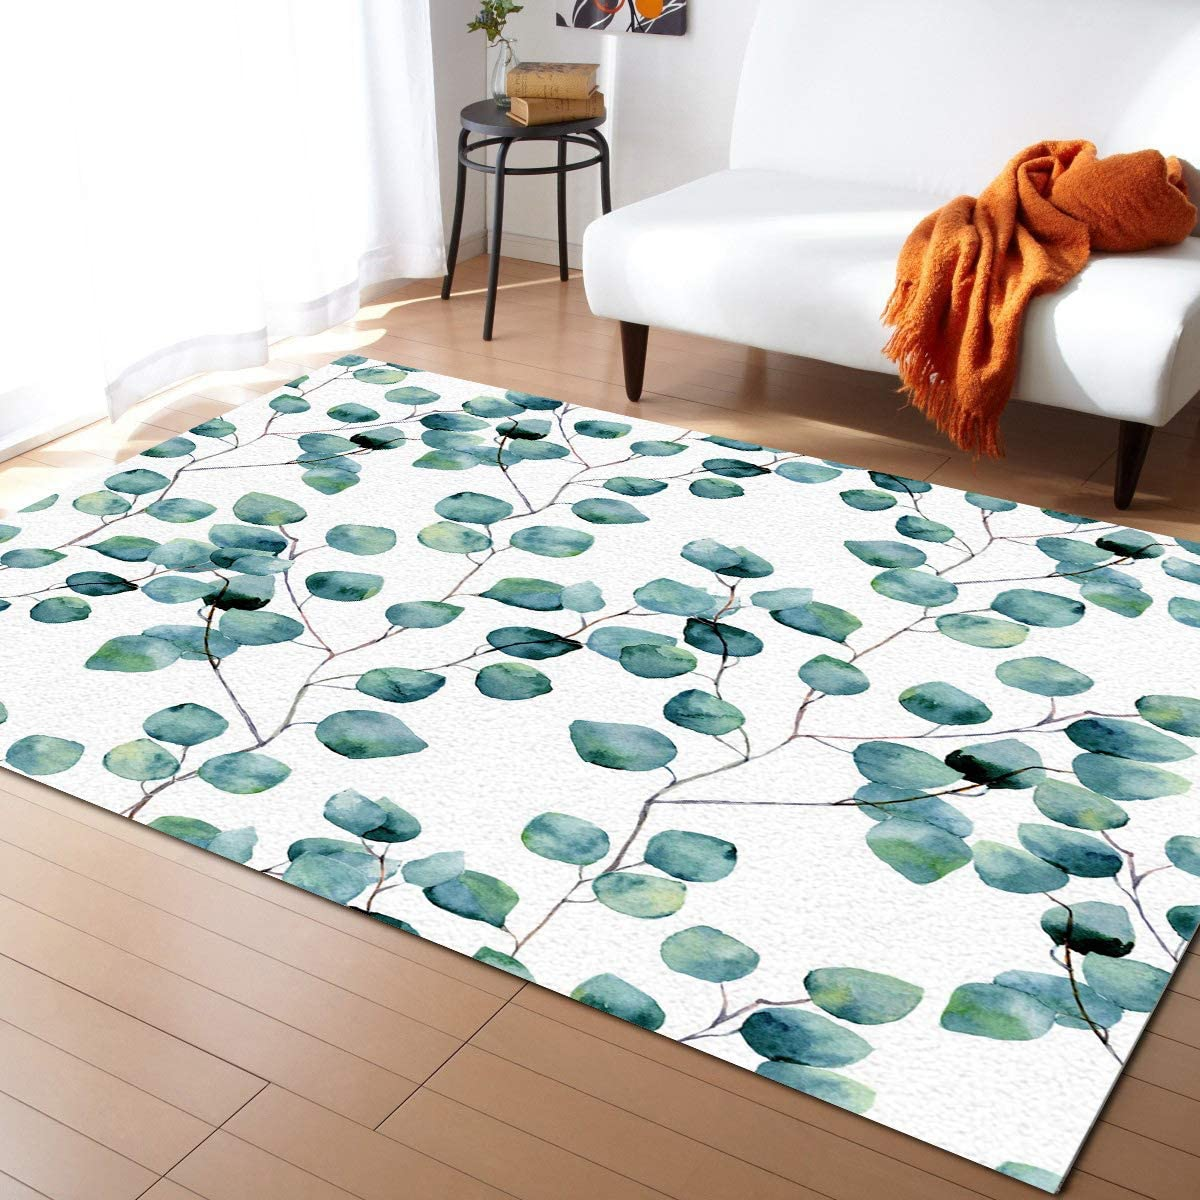 Chic D Watercolor Green Floral Collection Area Rug 2x3ft Eucalyptus Round Leaves Area Runner Rugs Non Slip Carpets Living Room Bedroom Indoor Outdoor Nursery Rugs Décor Garden Outdoor